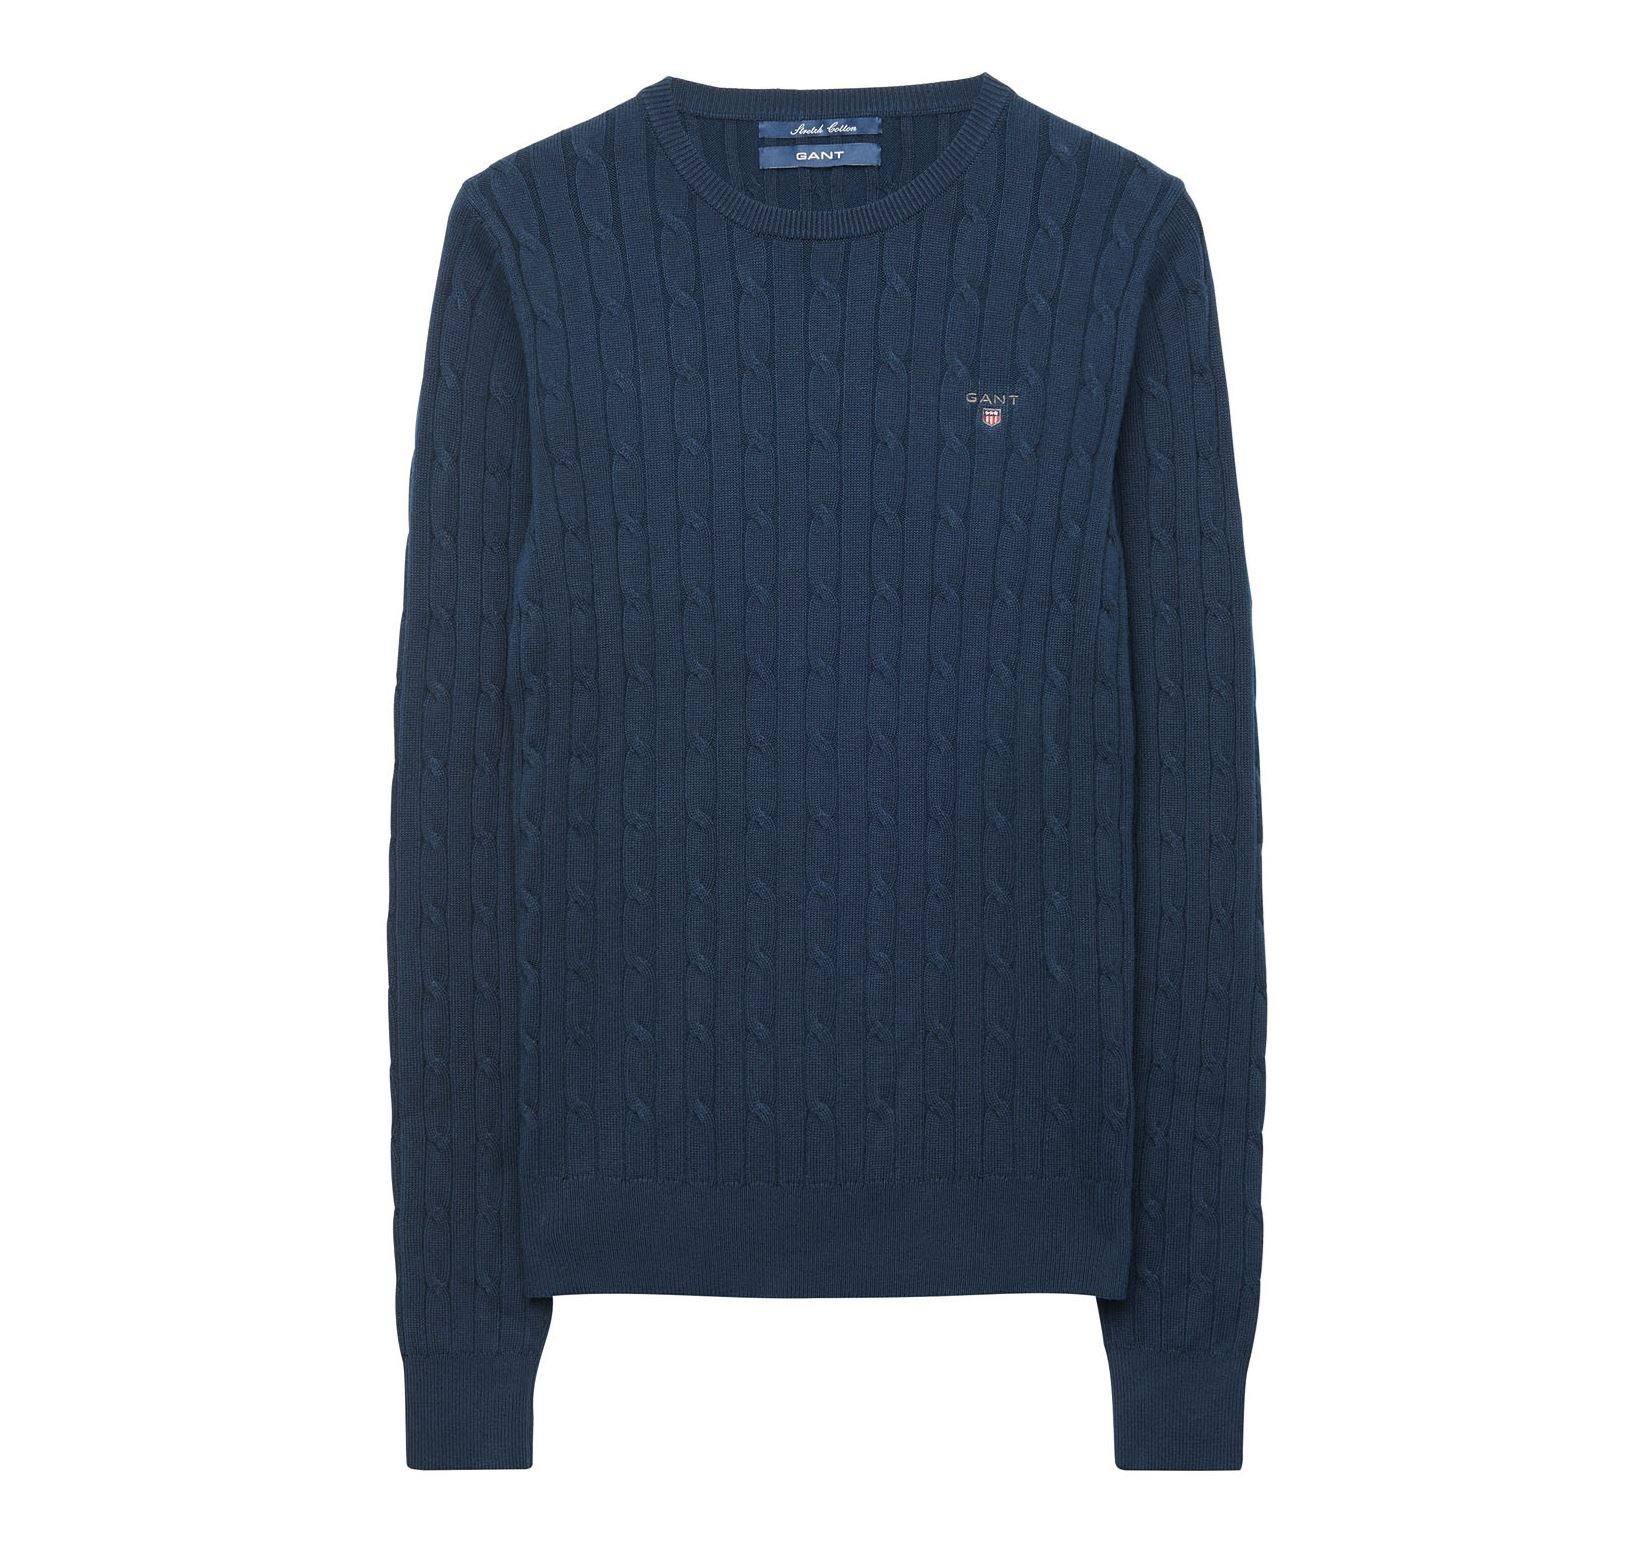 Gant Stretch Cotton Cable Crew Sweater Dam - Fri frakt hos Länna Sport 57f76b985a47